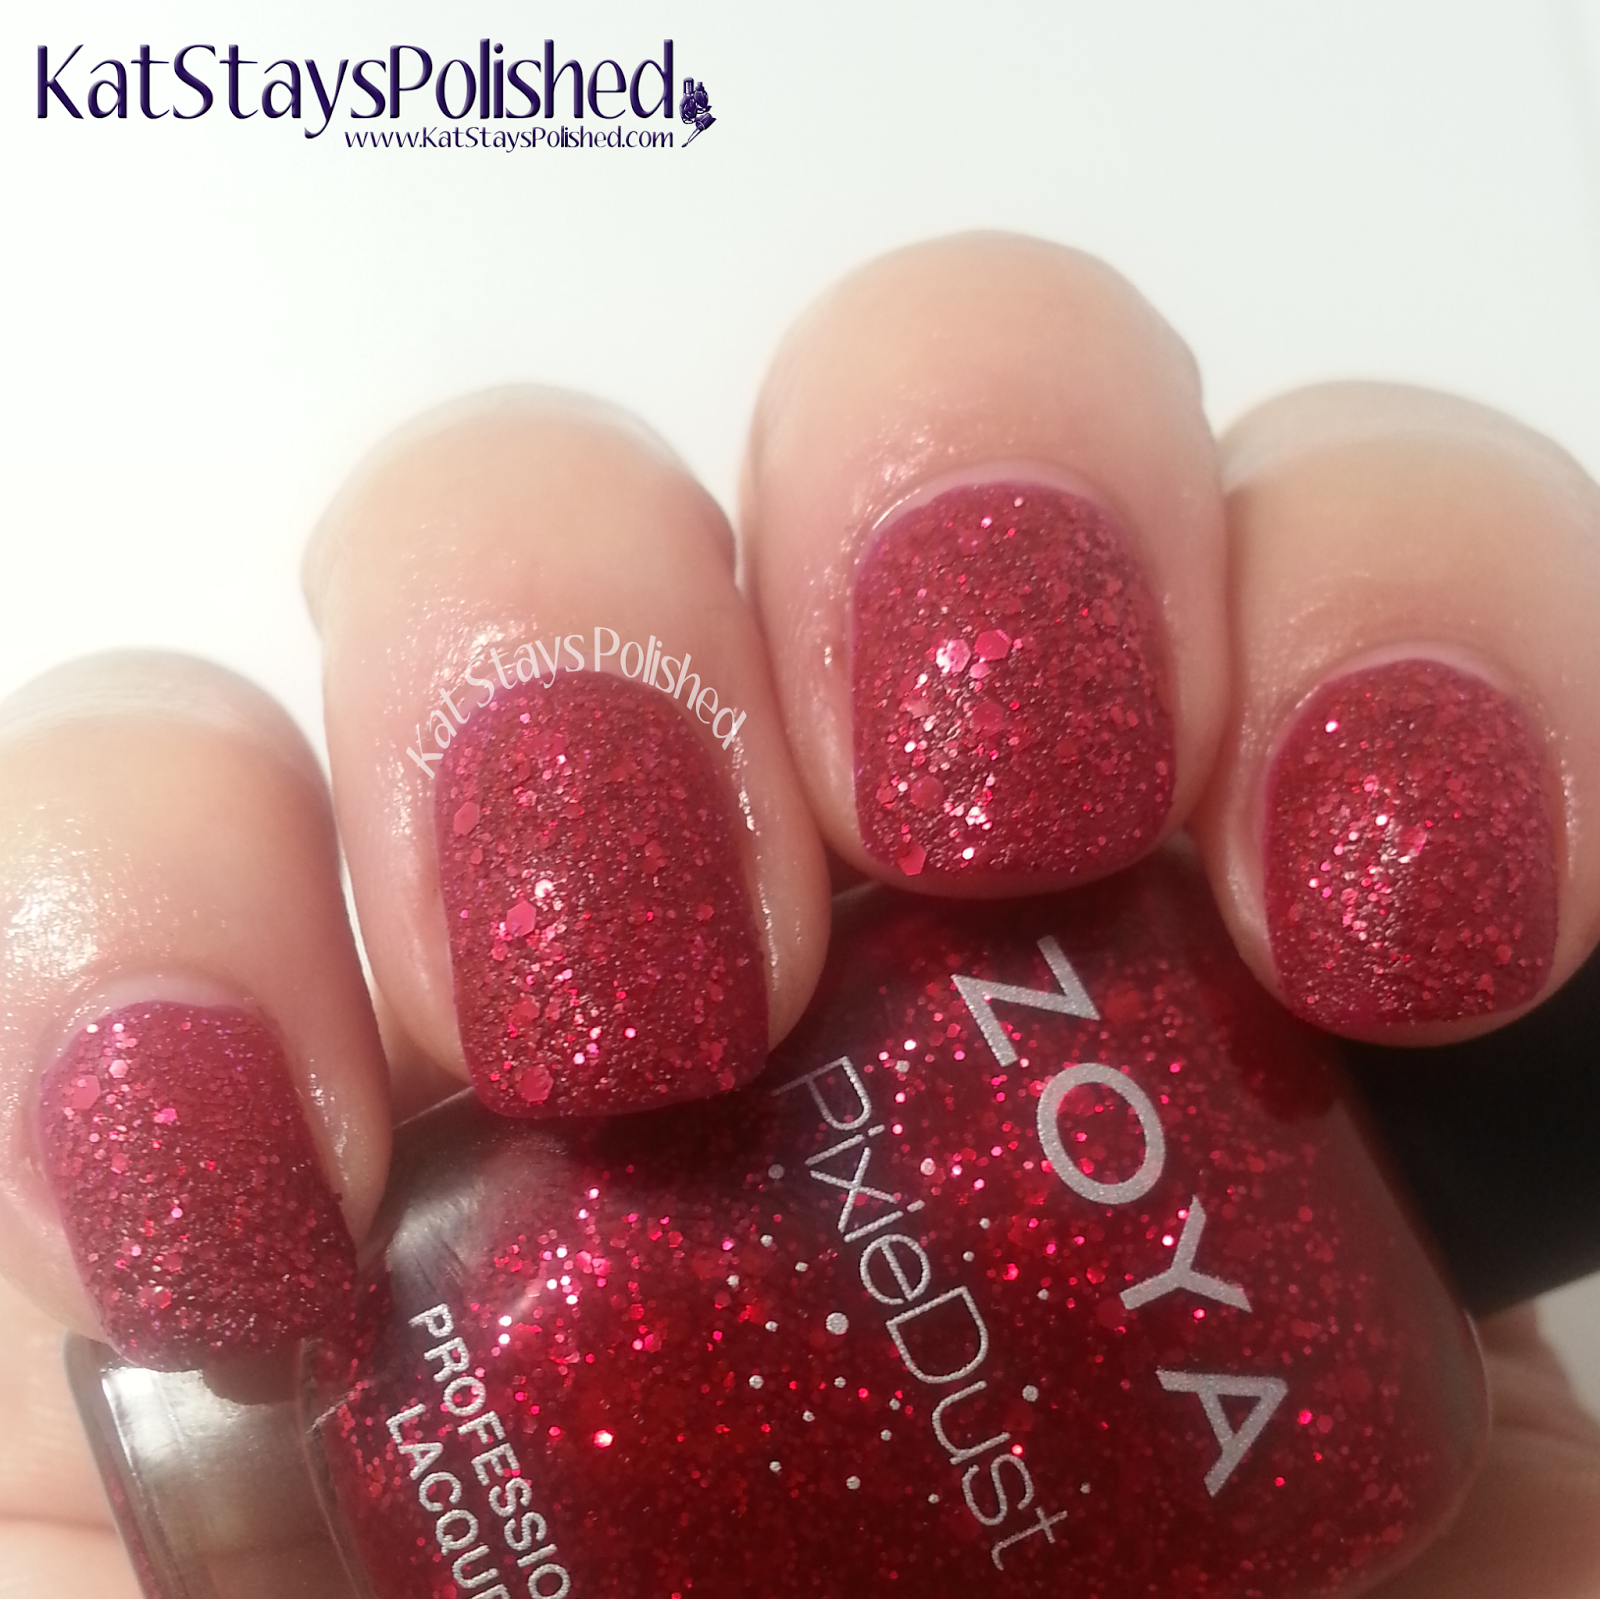 Zoya Ultra PixieDust - Oswin | Kat Stays Polished